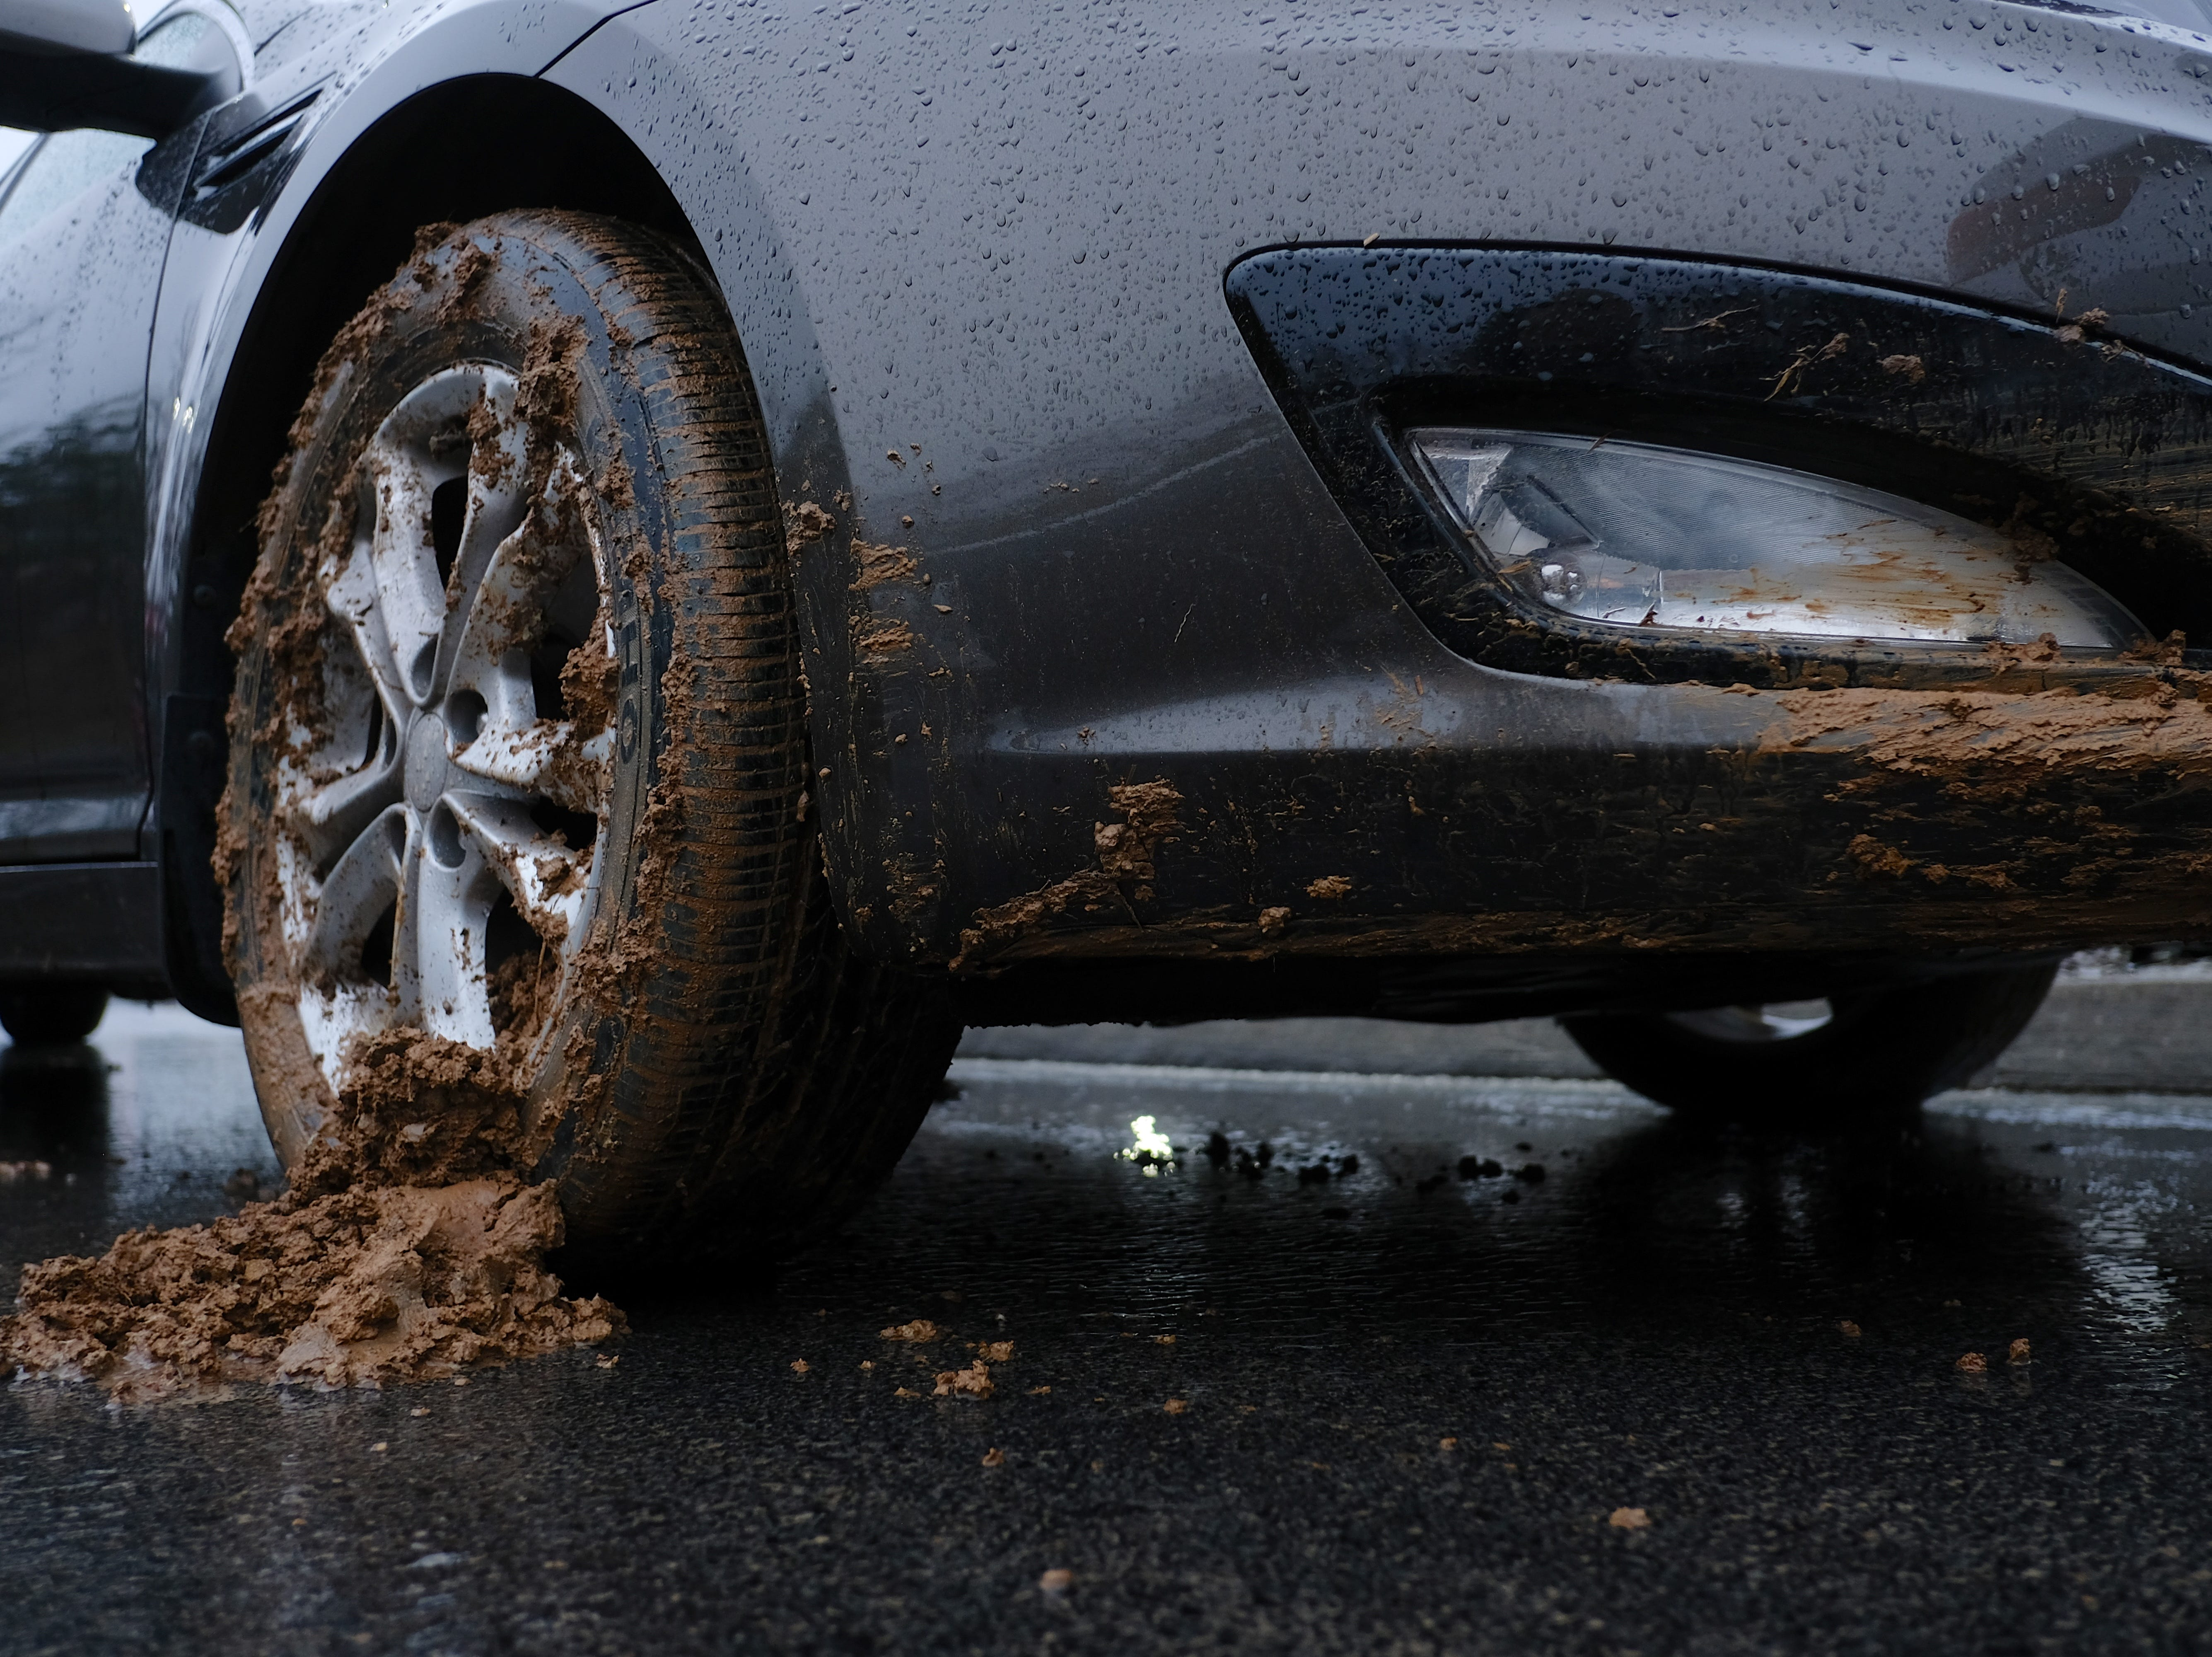 Thick coats of mud and damage is visible from a mudslide that happened at Rusty Wallace Kia of Knoxville on Saturday, February 23, 2019, in Knoxville, Tenn. General manager Jake Bull reports an estimated damage of 30 new vehicles at his lot due to the mudslide.